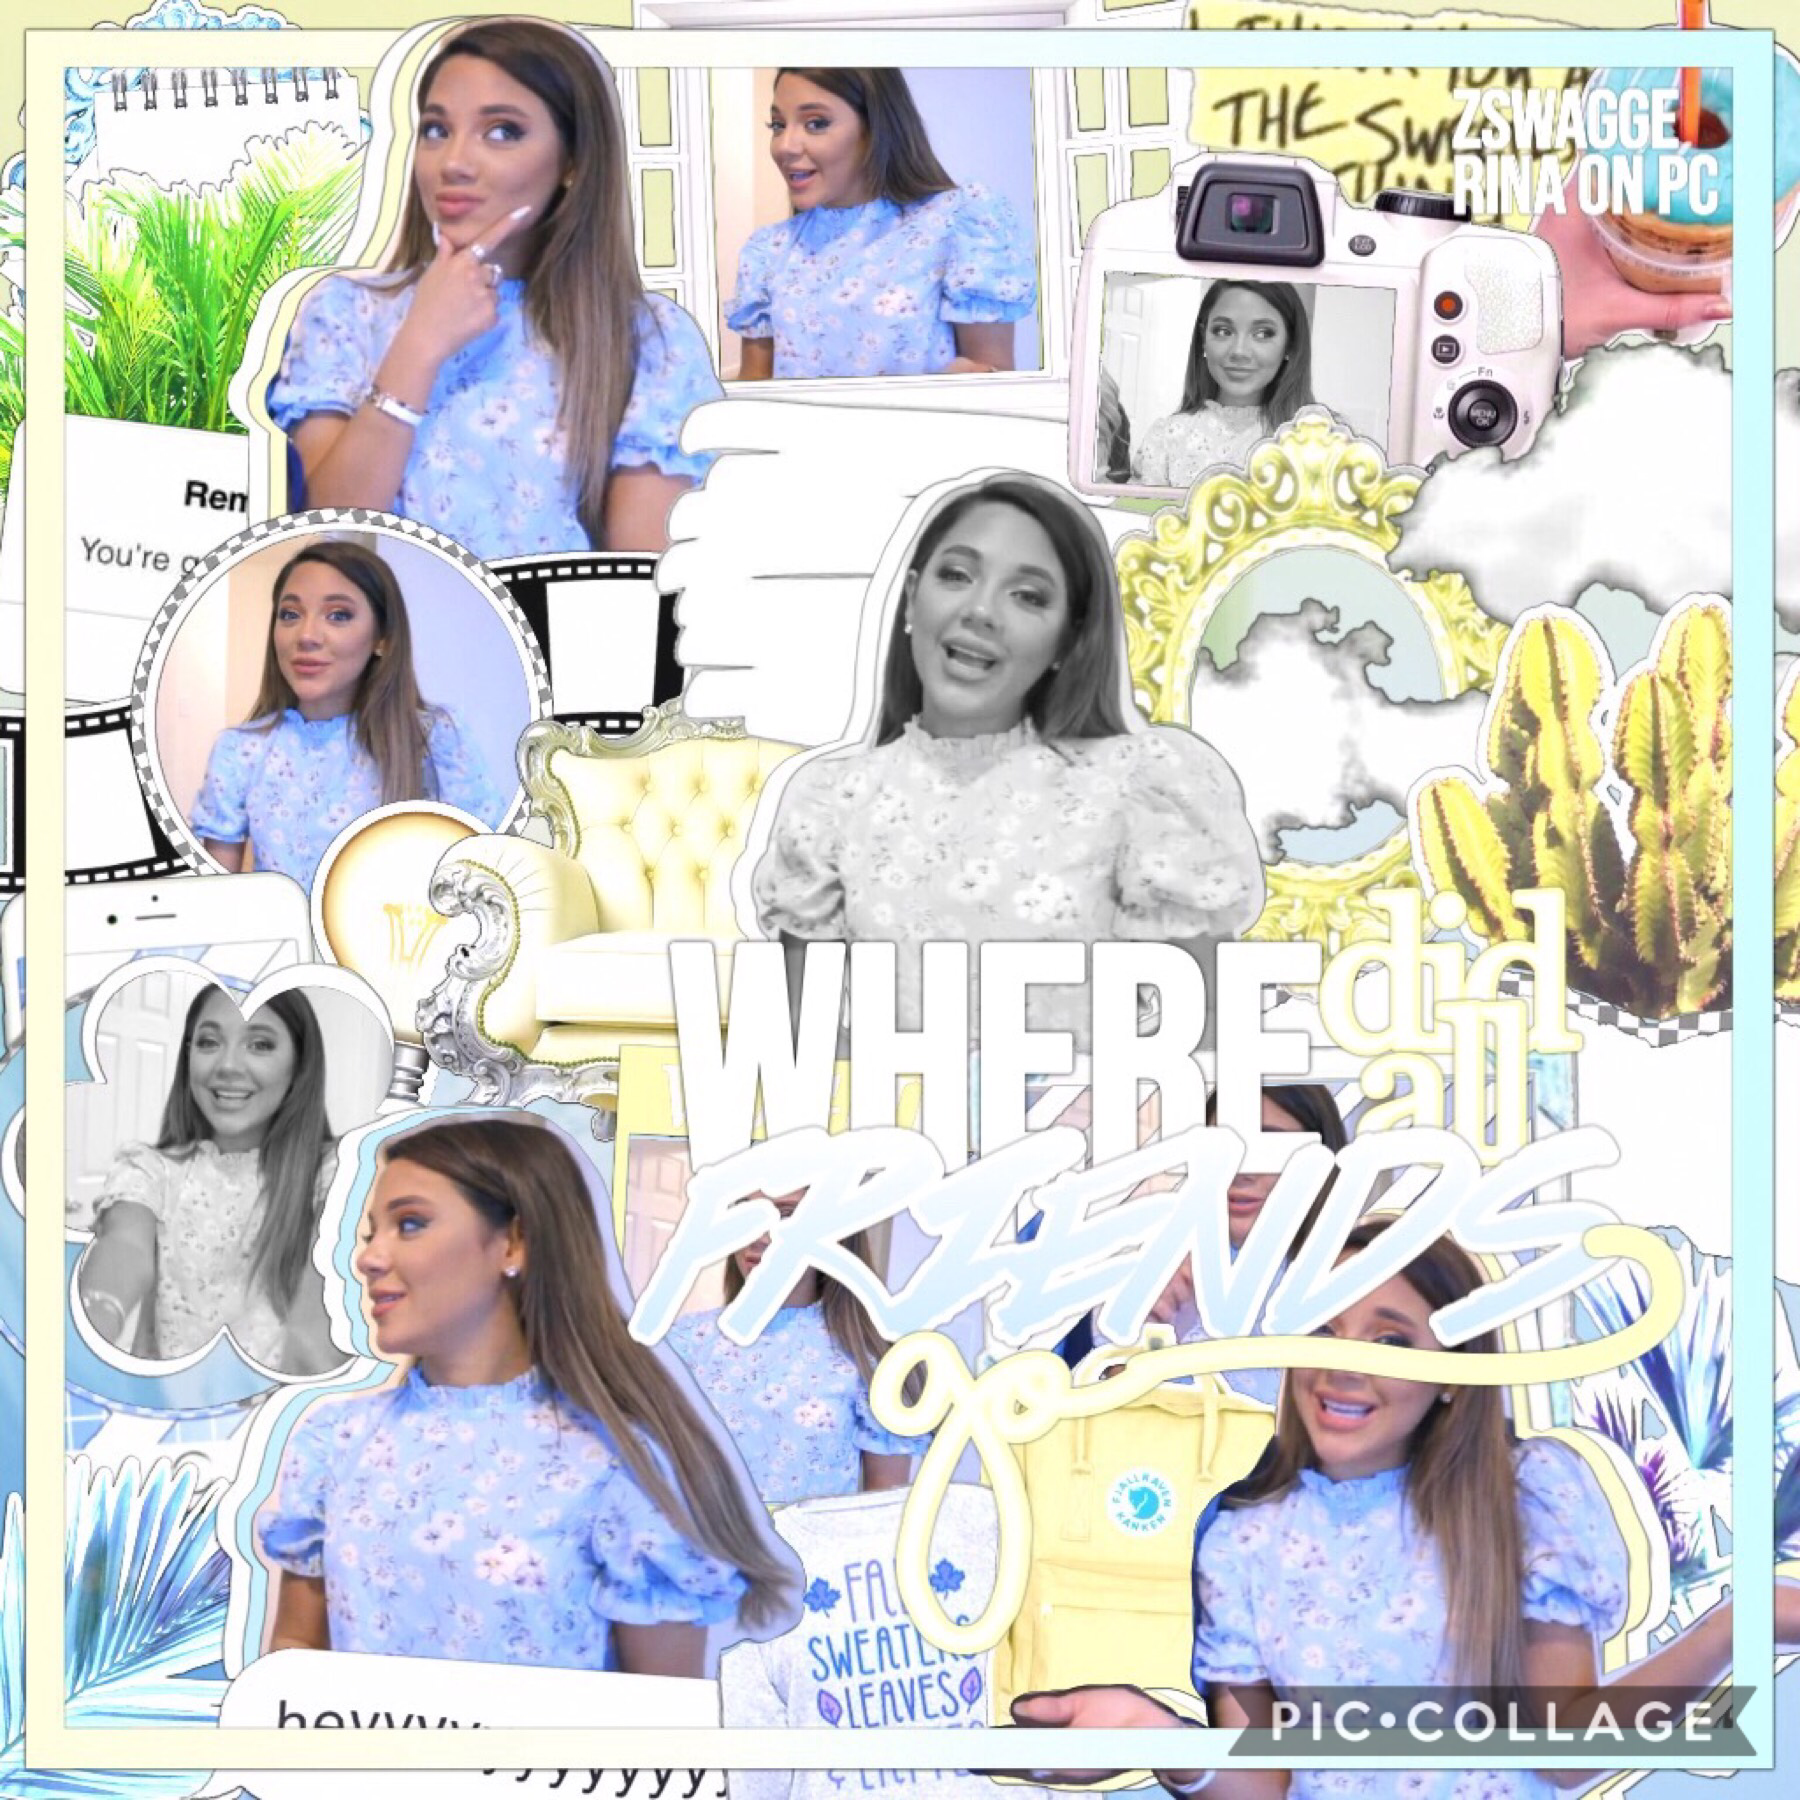 heyyy everyone ☺️💙 I literally made this edit in 20 minutes the other night lol. you like it? ✨ also, how is your weekend going? 🌱🌩 hope you're having a better one than mine, I need to study! ugh, wish me luck! ♡